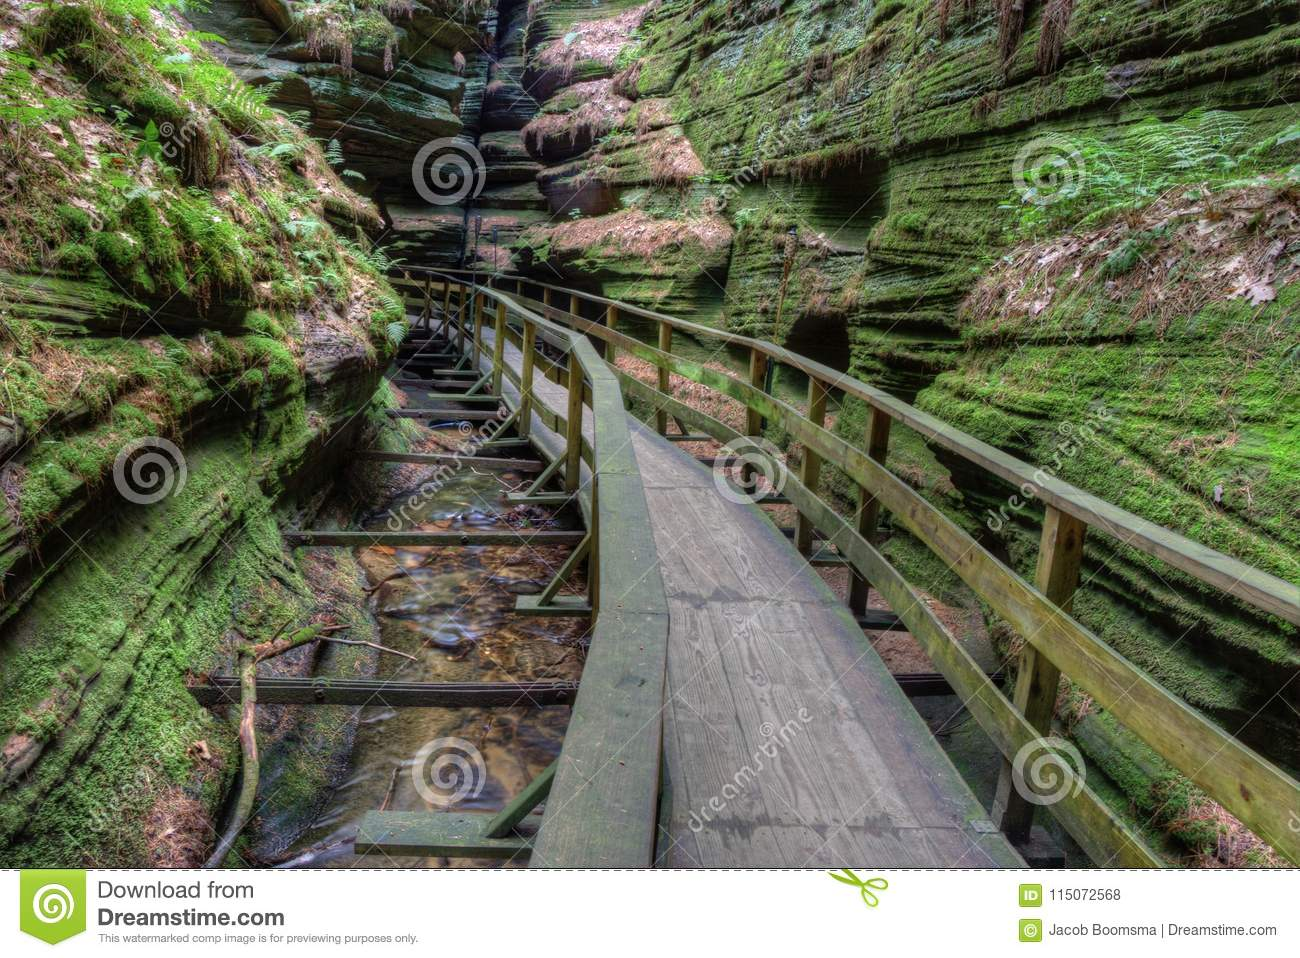 Witches Gulch is a hidden Attraction in Wisconsin Dells and can